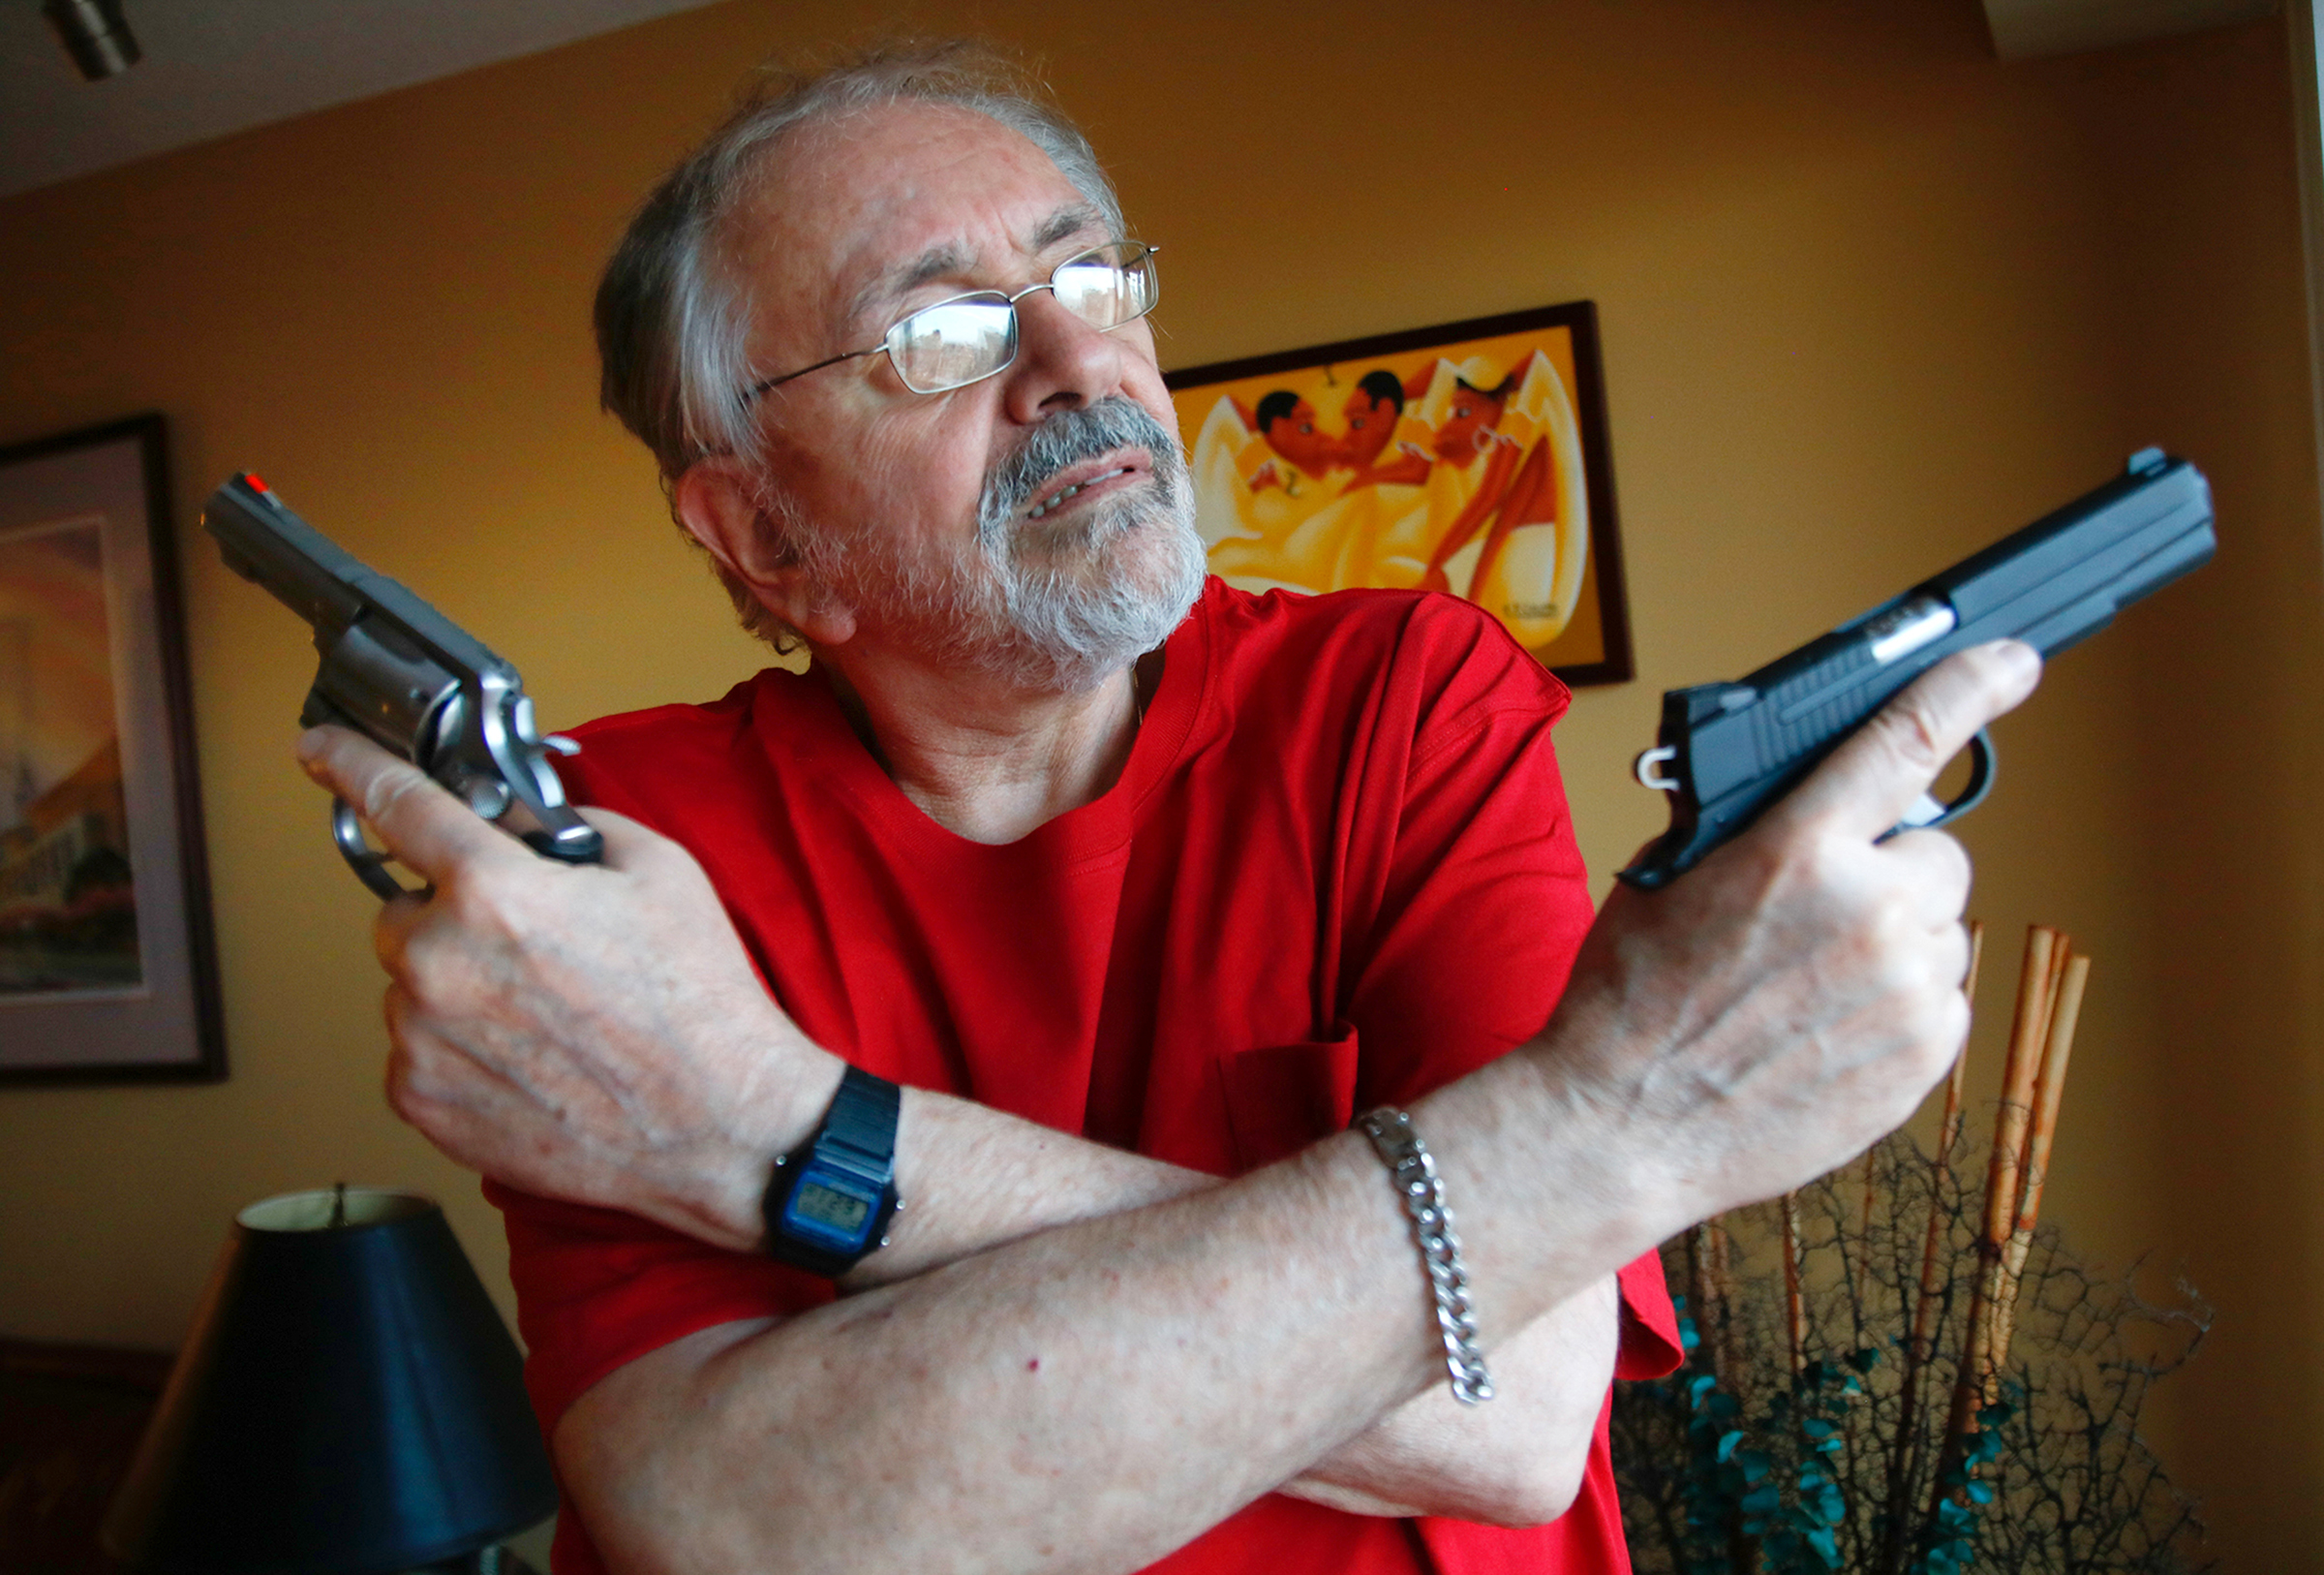 Stu Bykofsky poses in his home with two of his firearms for which he needs a gun permit.